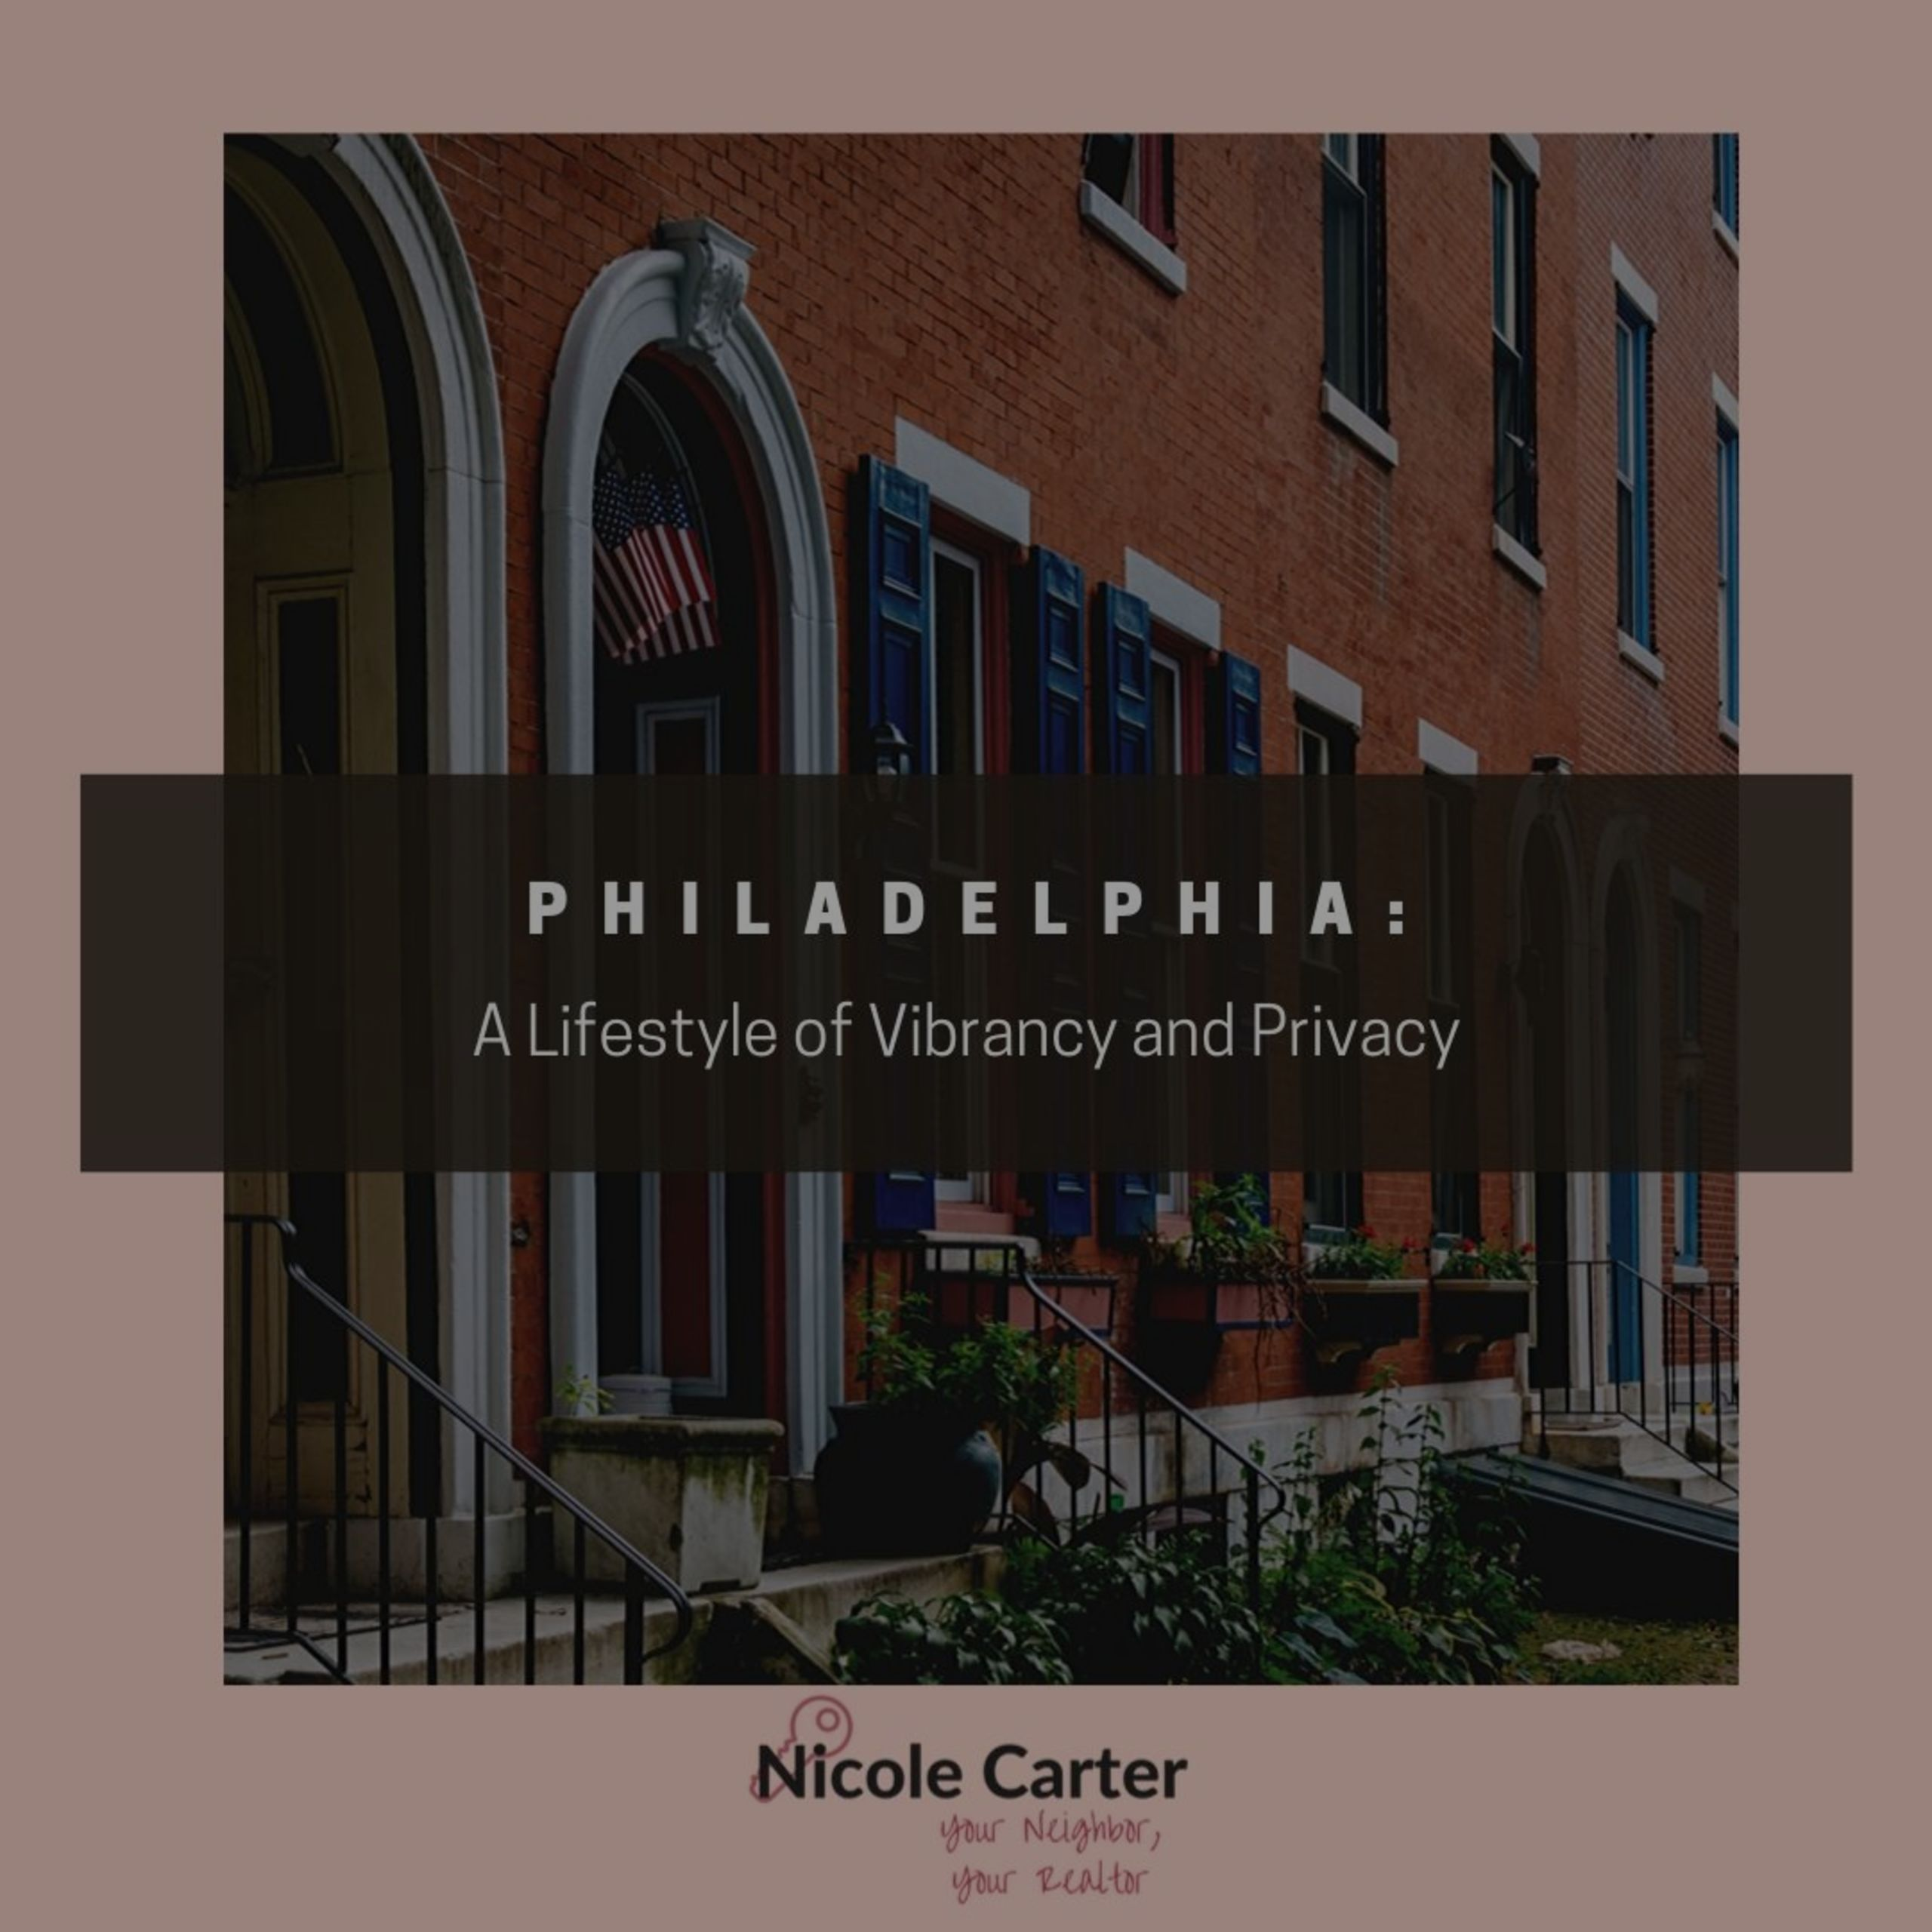 Philadelphia: A Lifestyle of Vibrancy and Privacy